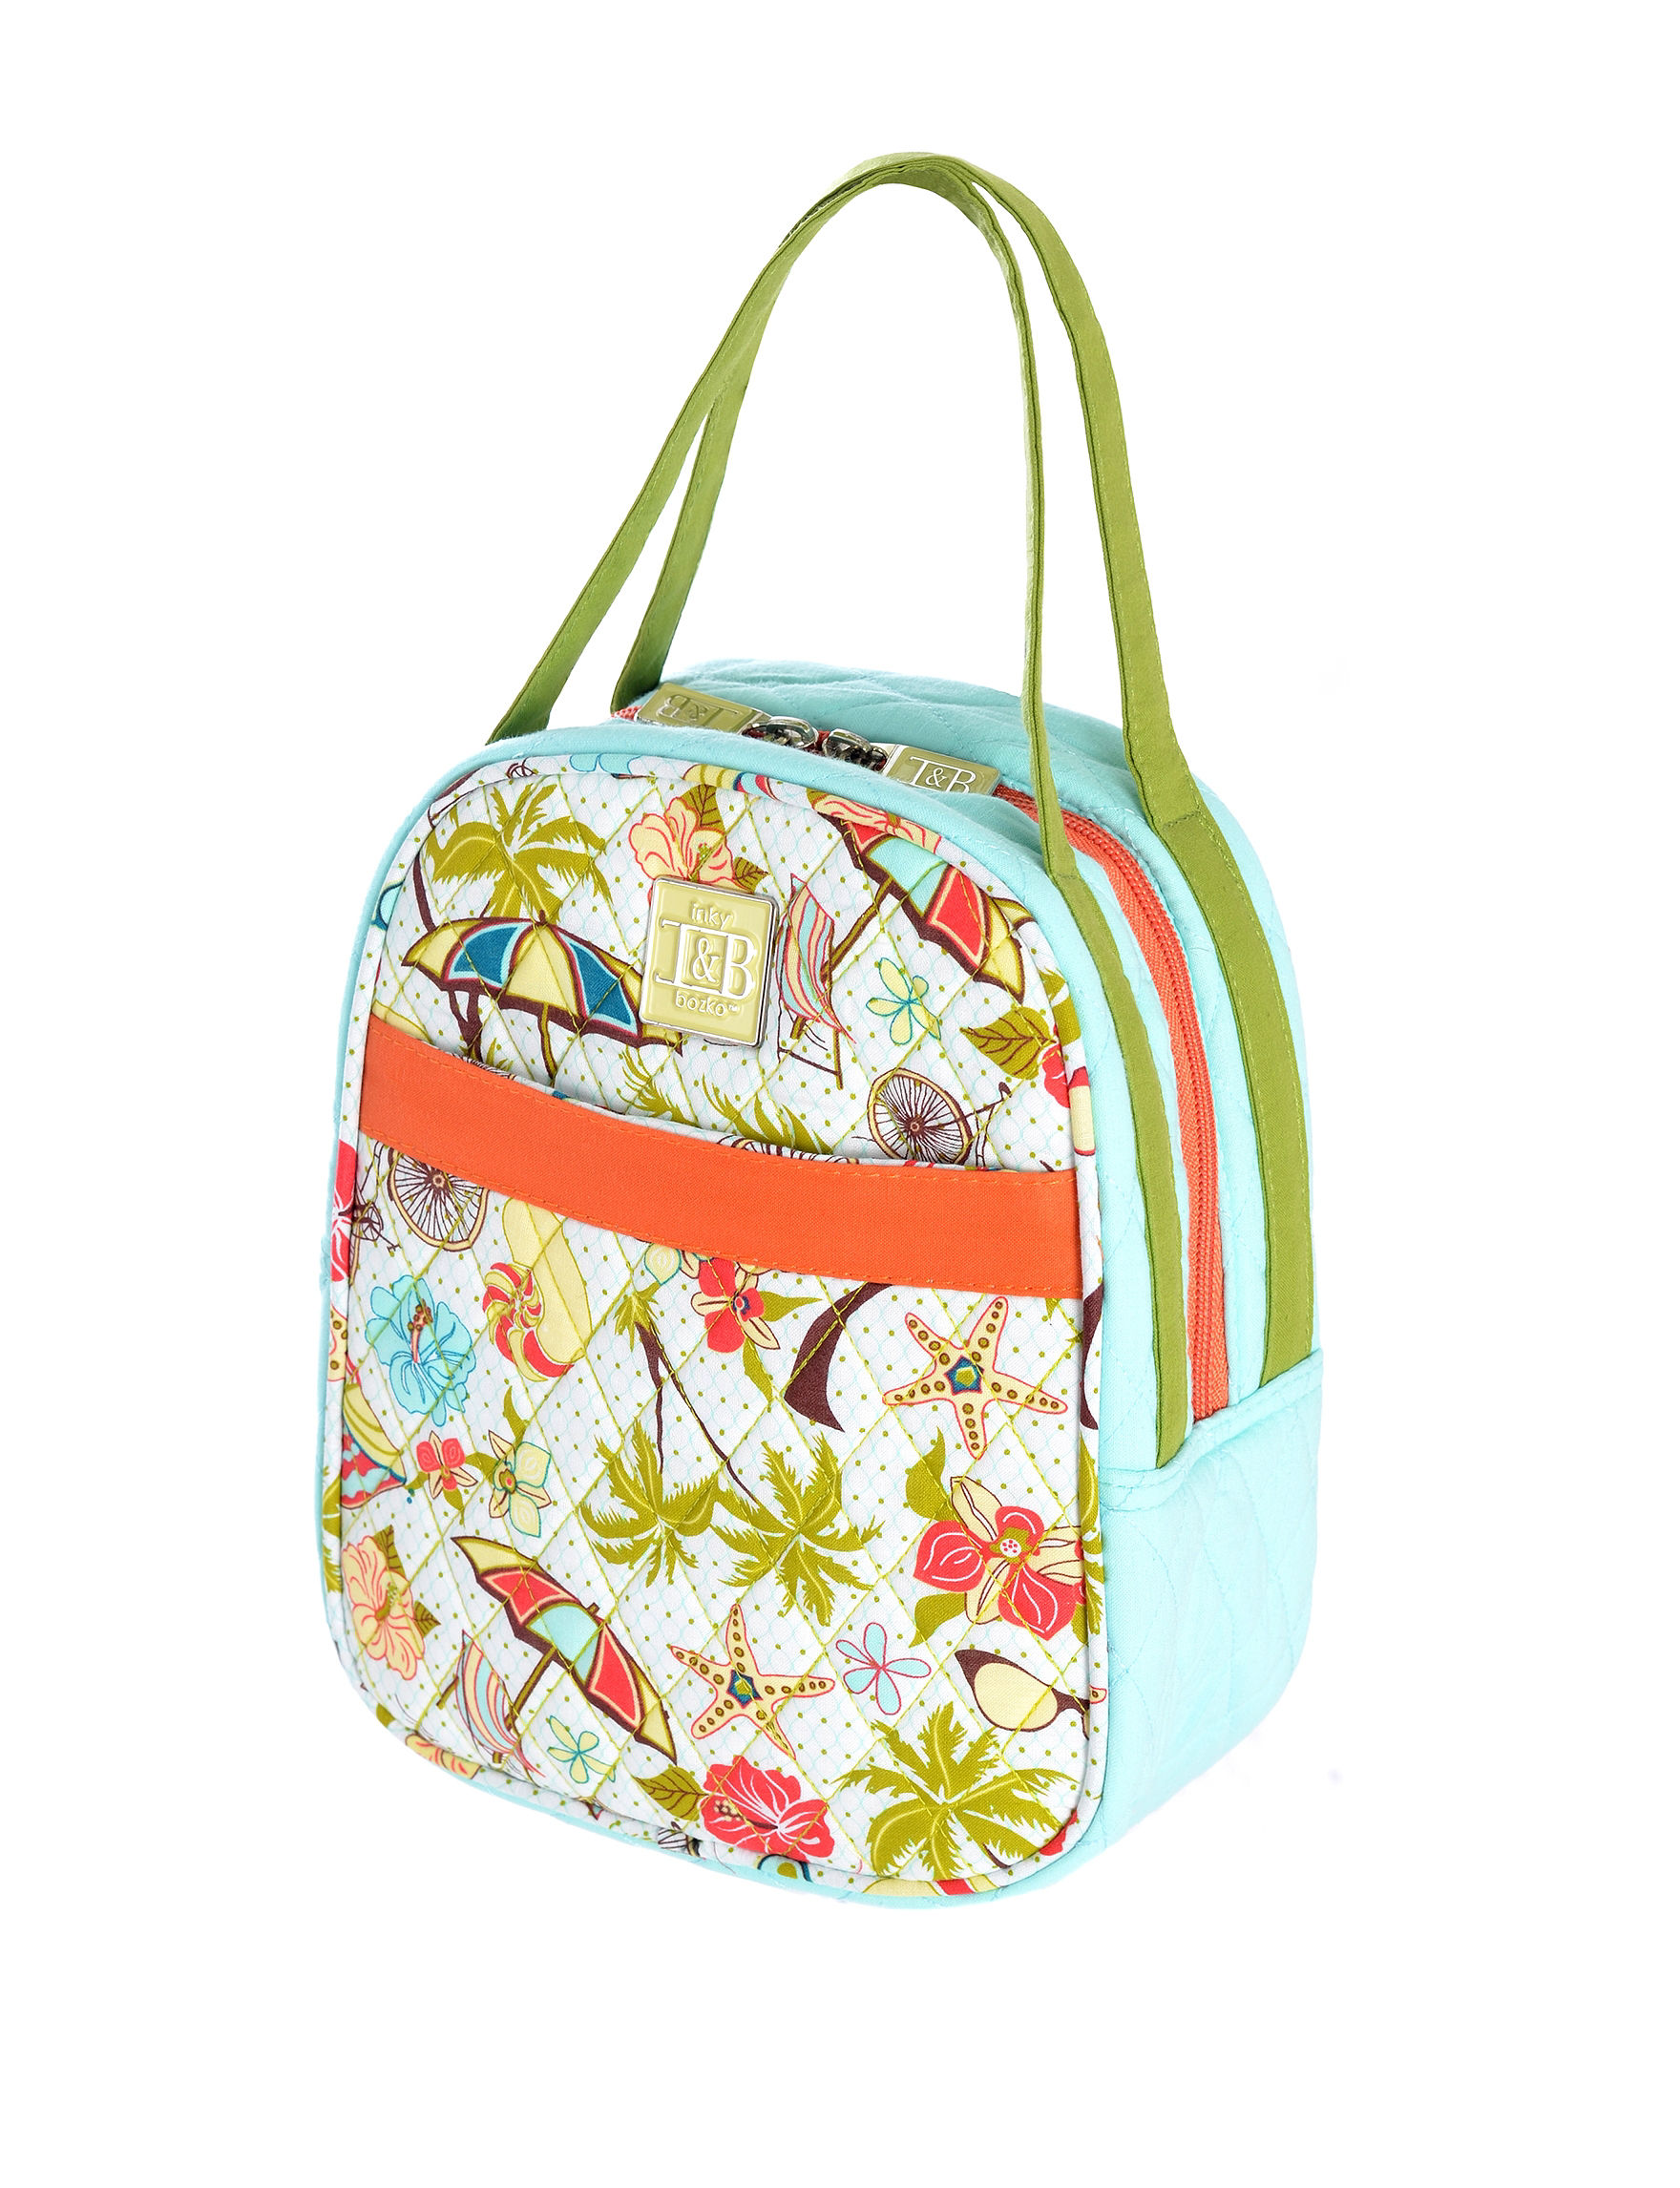 Inky & Bozko Blue / Green Lunch Boxes & Bags Travel Totes